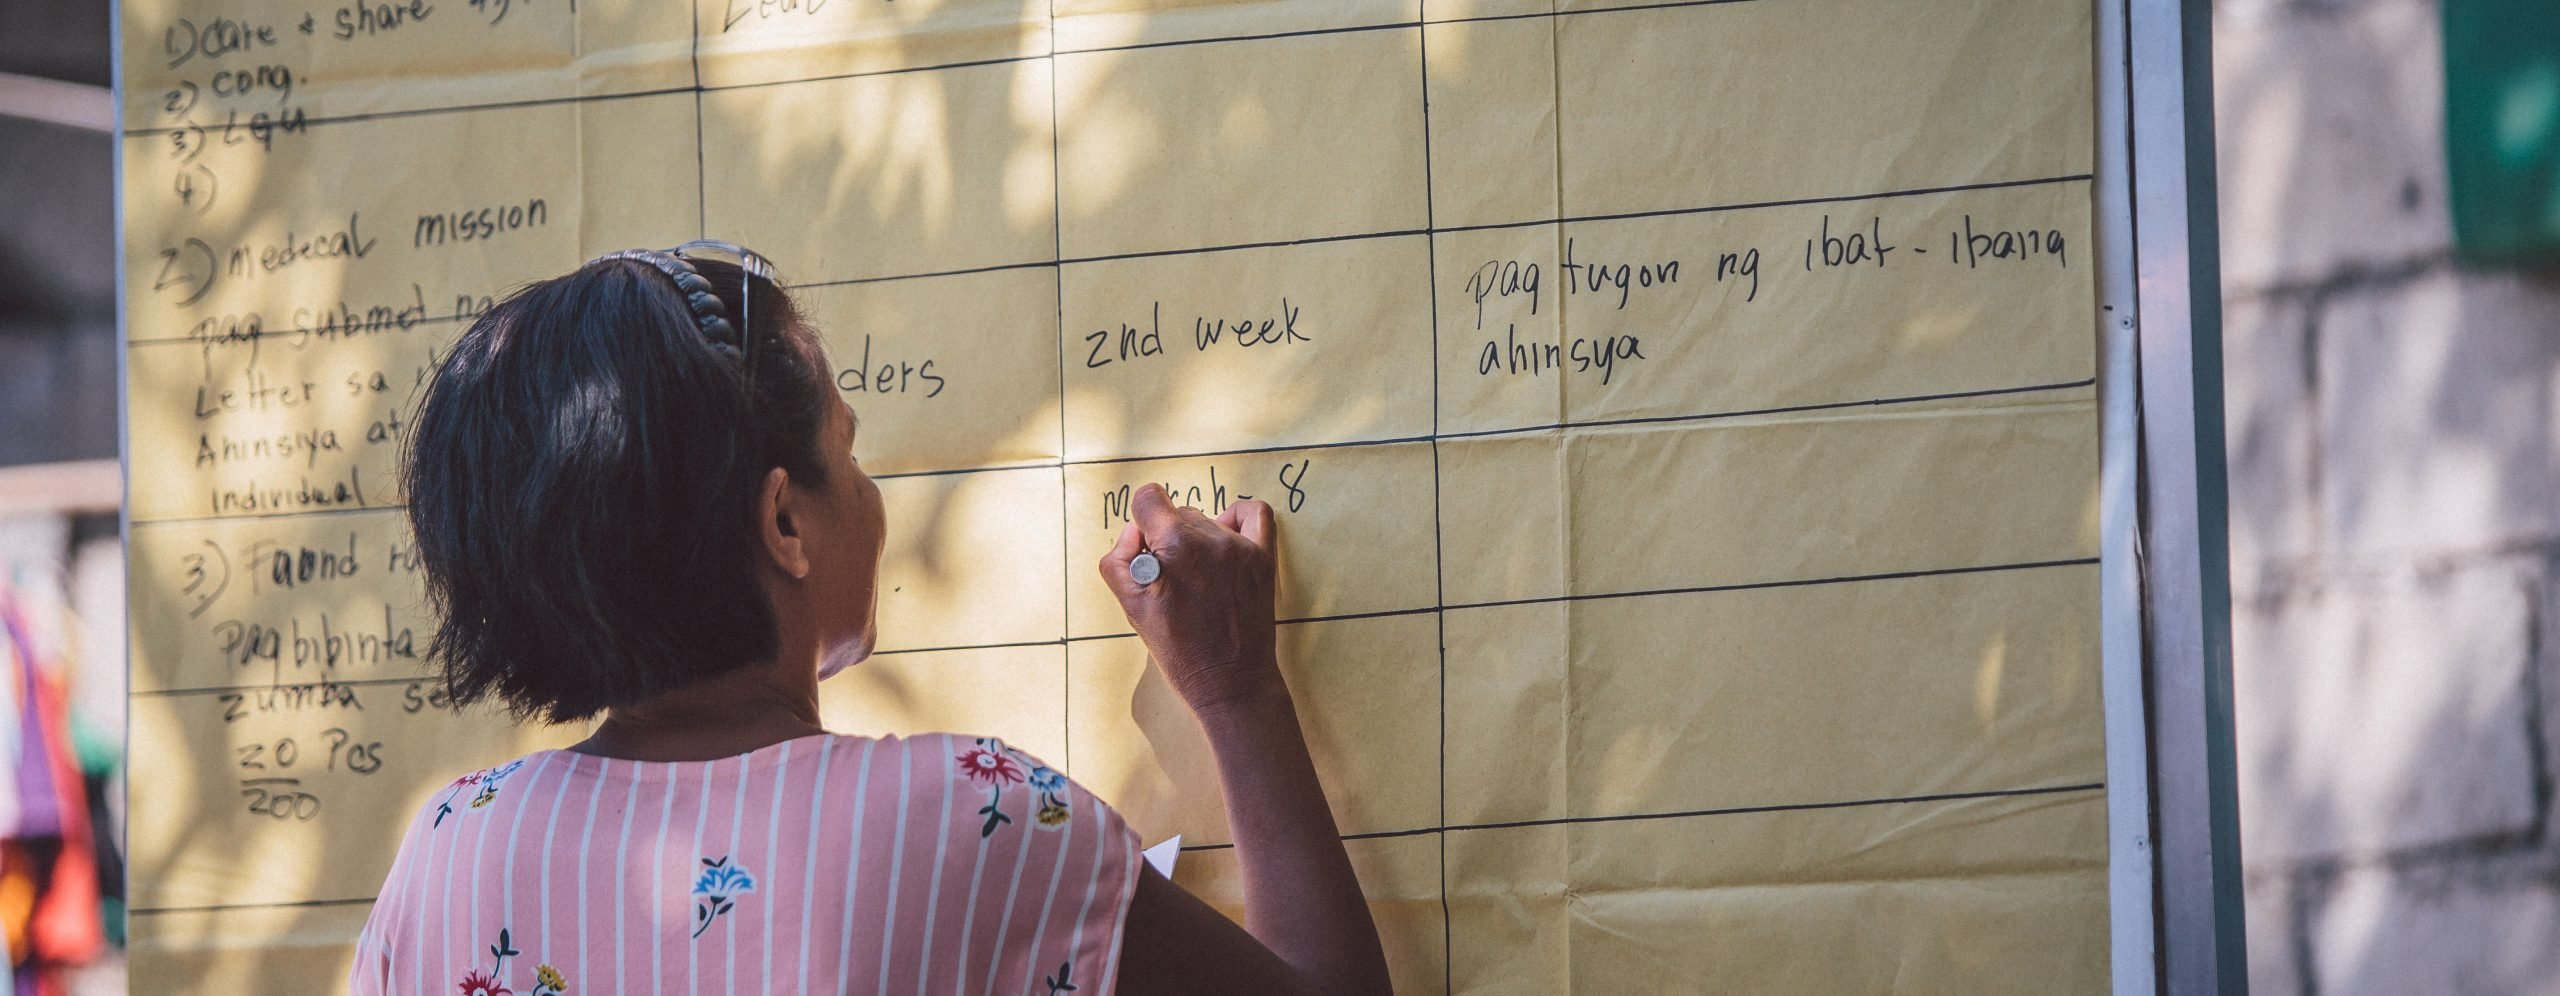 Feature image for In-Person Meetings Philippines Article